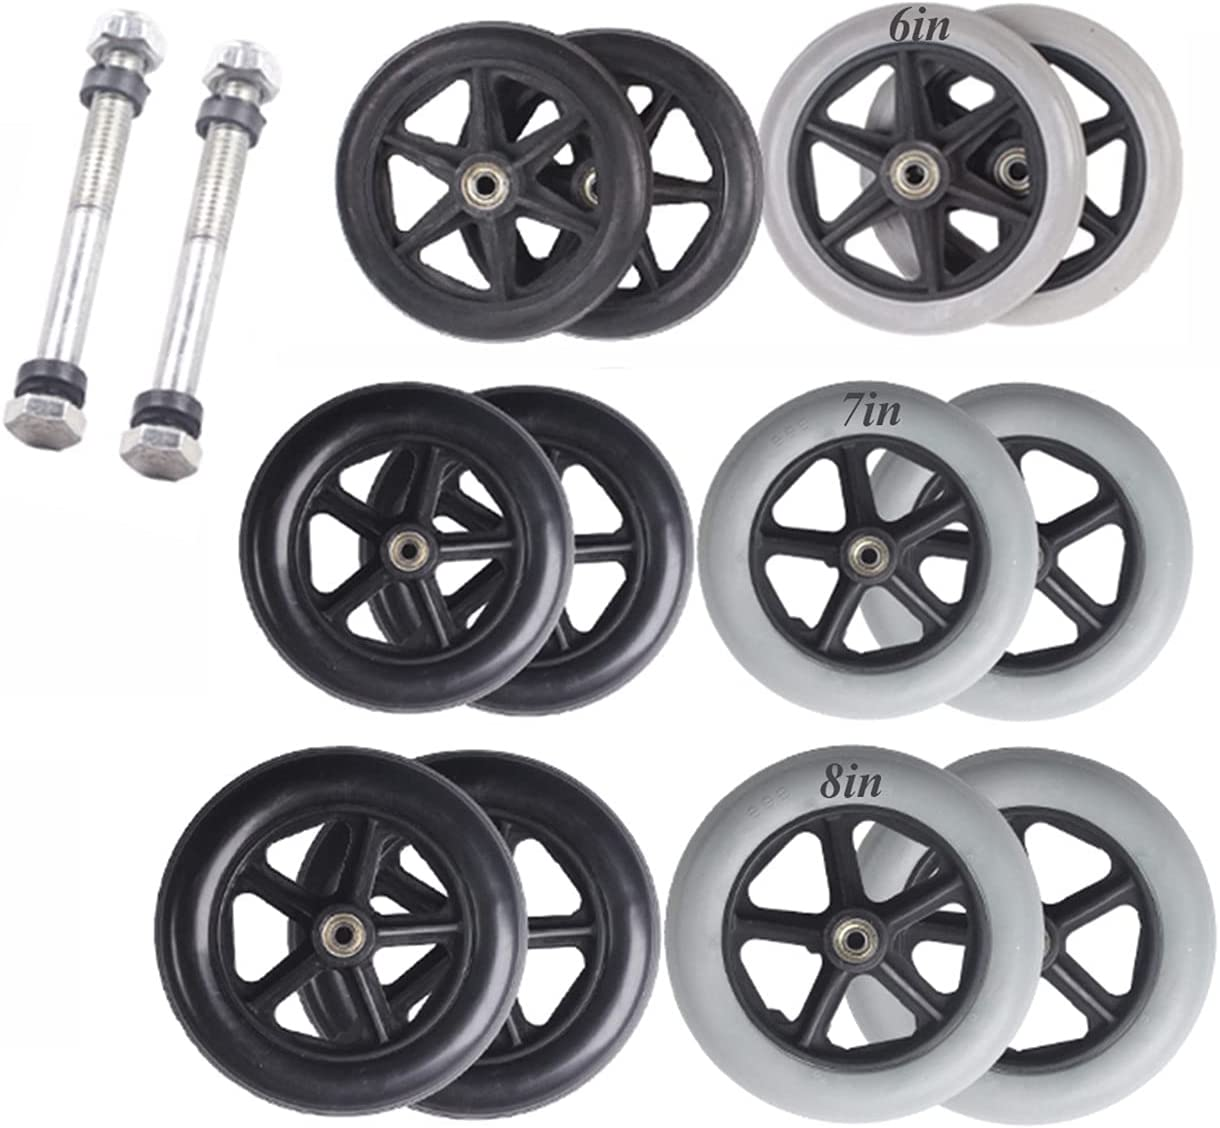 YFGYF Pack of 2 New life - Replacement Front Wheelchair High order Wheels Universa